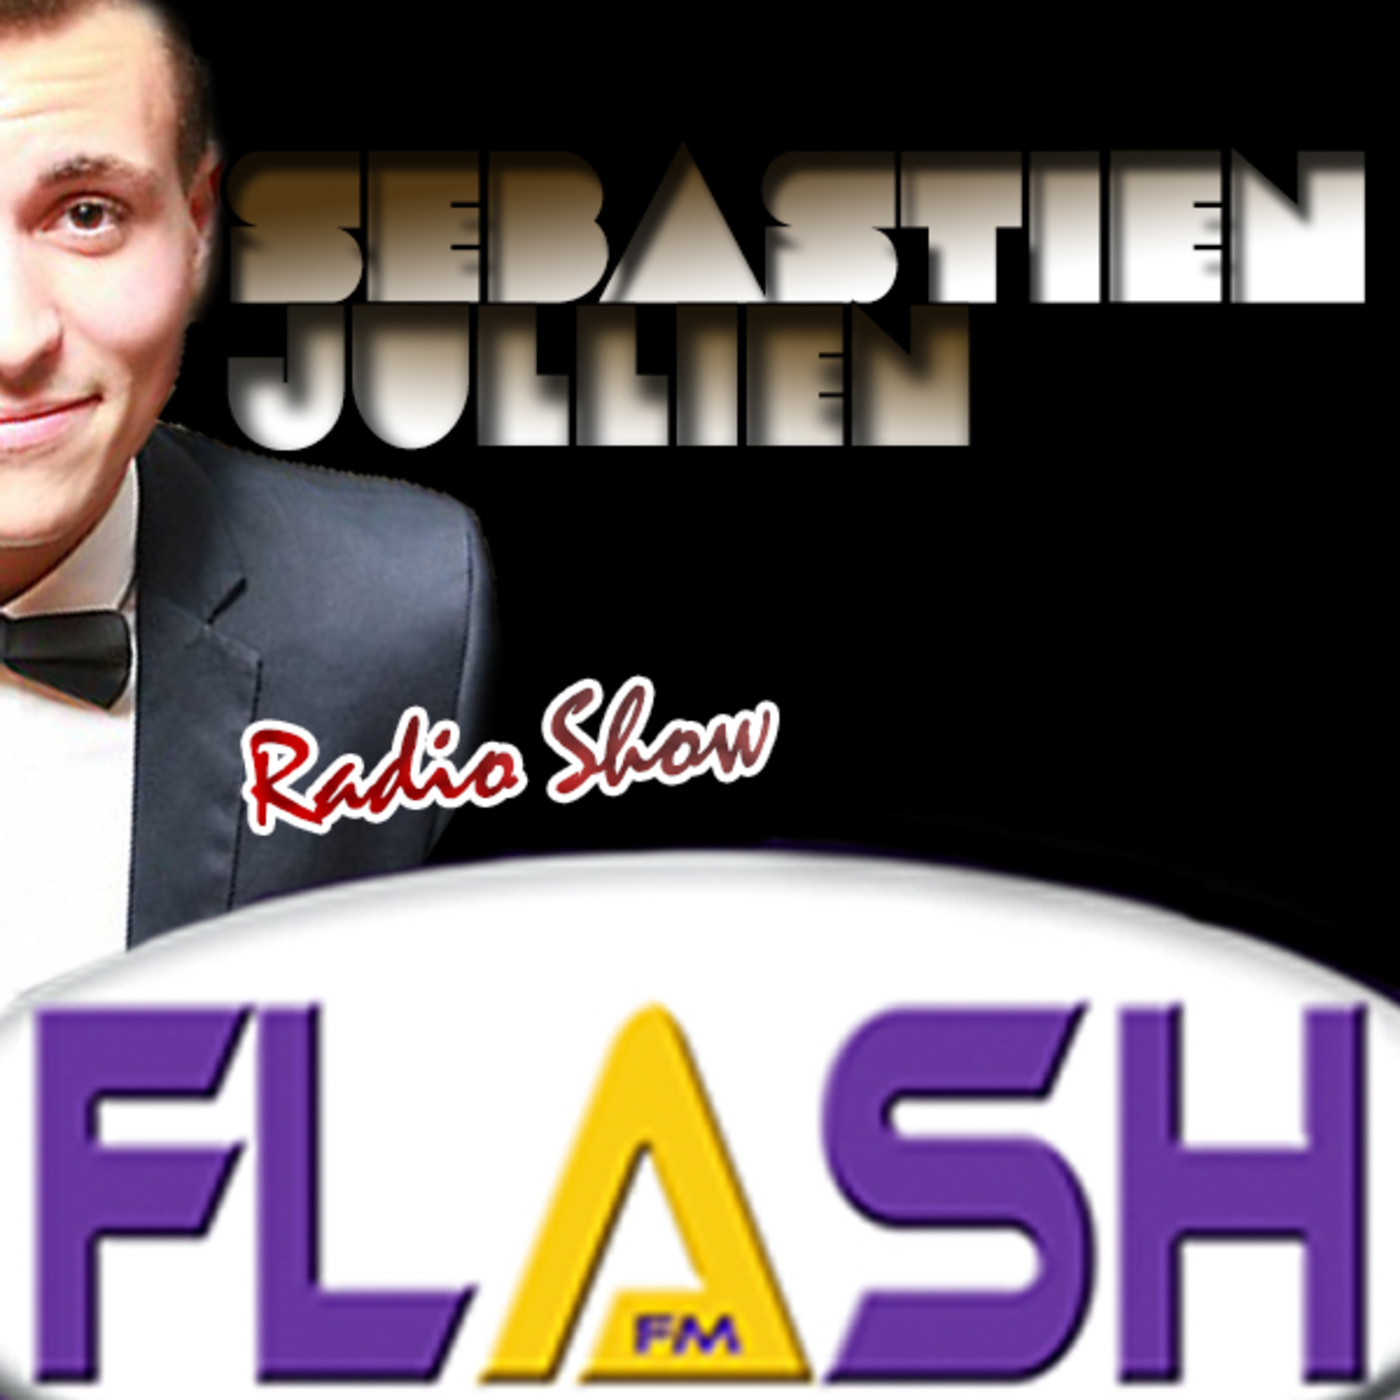 Sebastien Jullien Club Session Flashfm